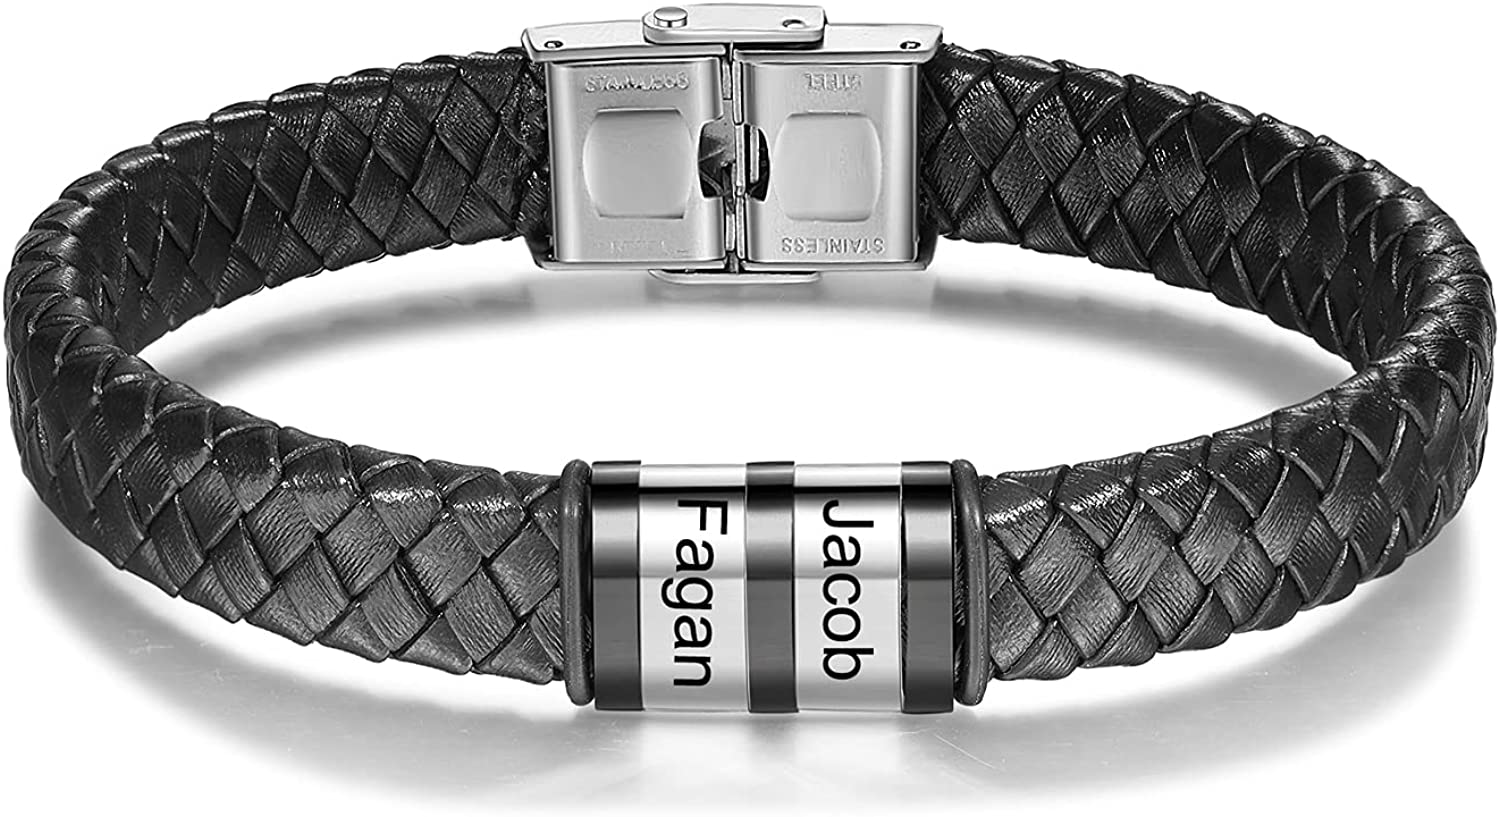 Personalized Mens Complete Free Shipping Omaha Mall Black Leather Bracelets Inc Engraving 8.2